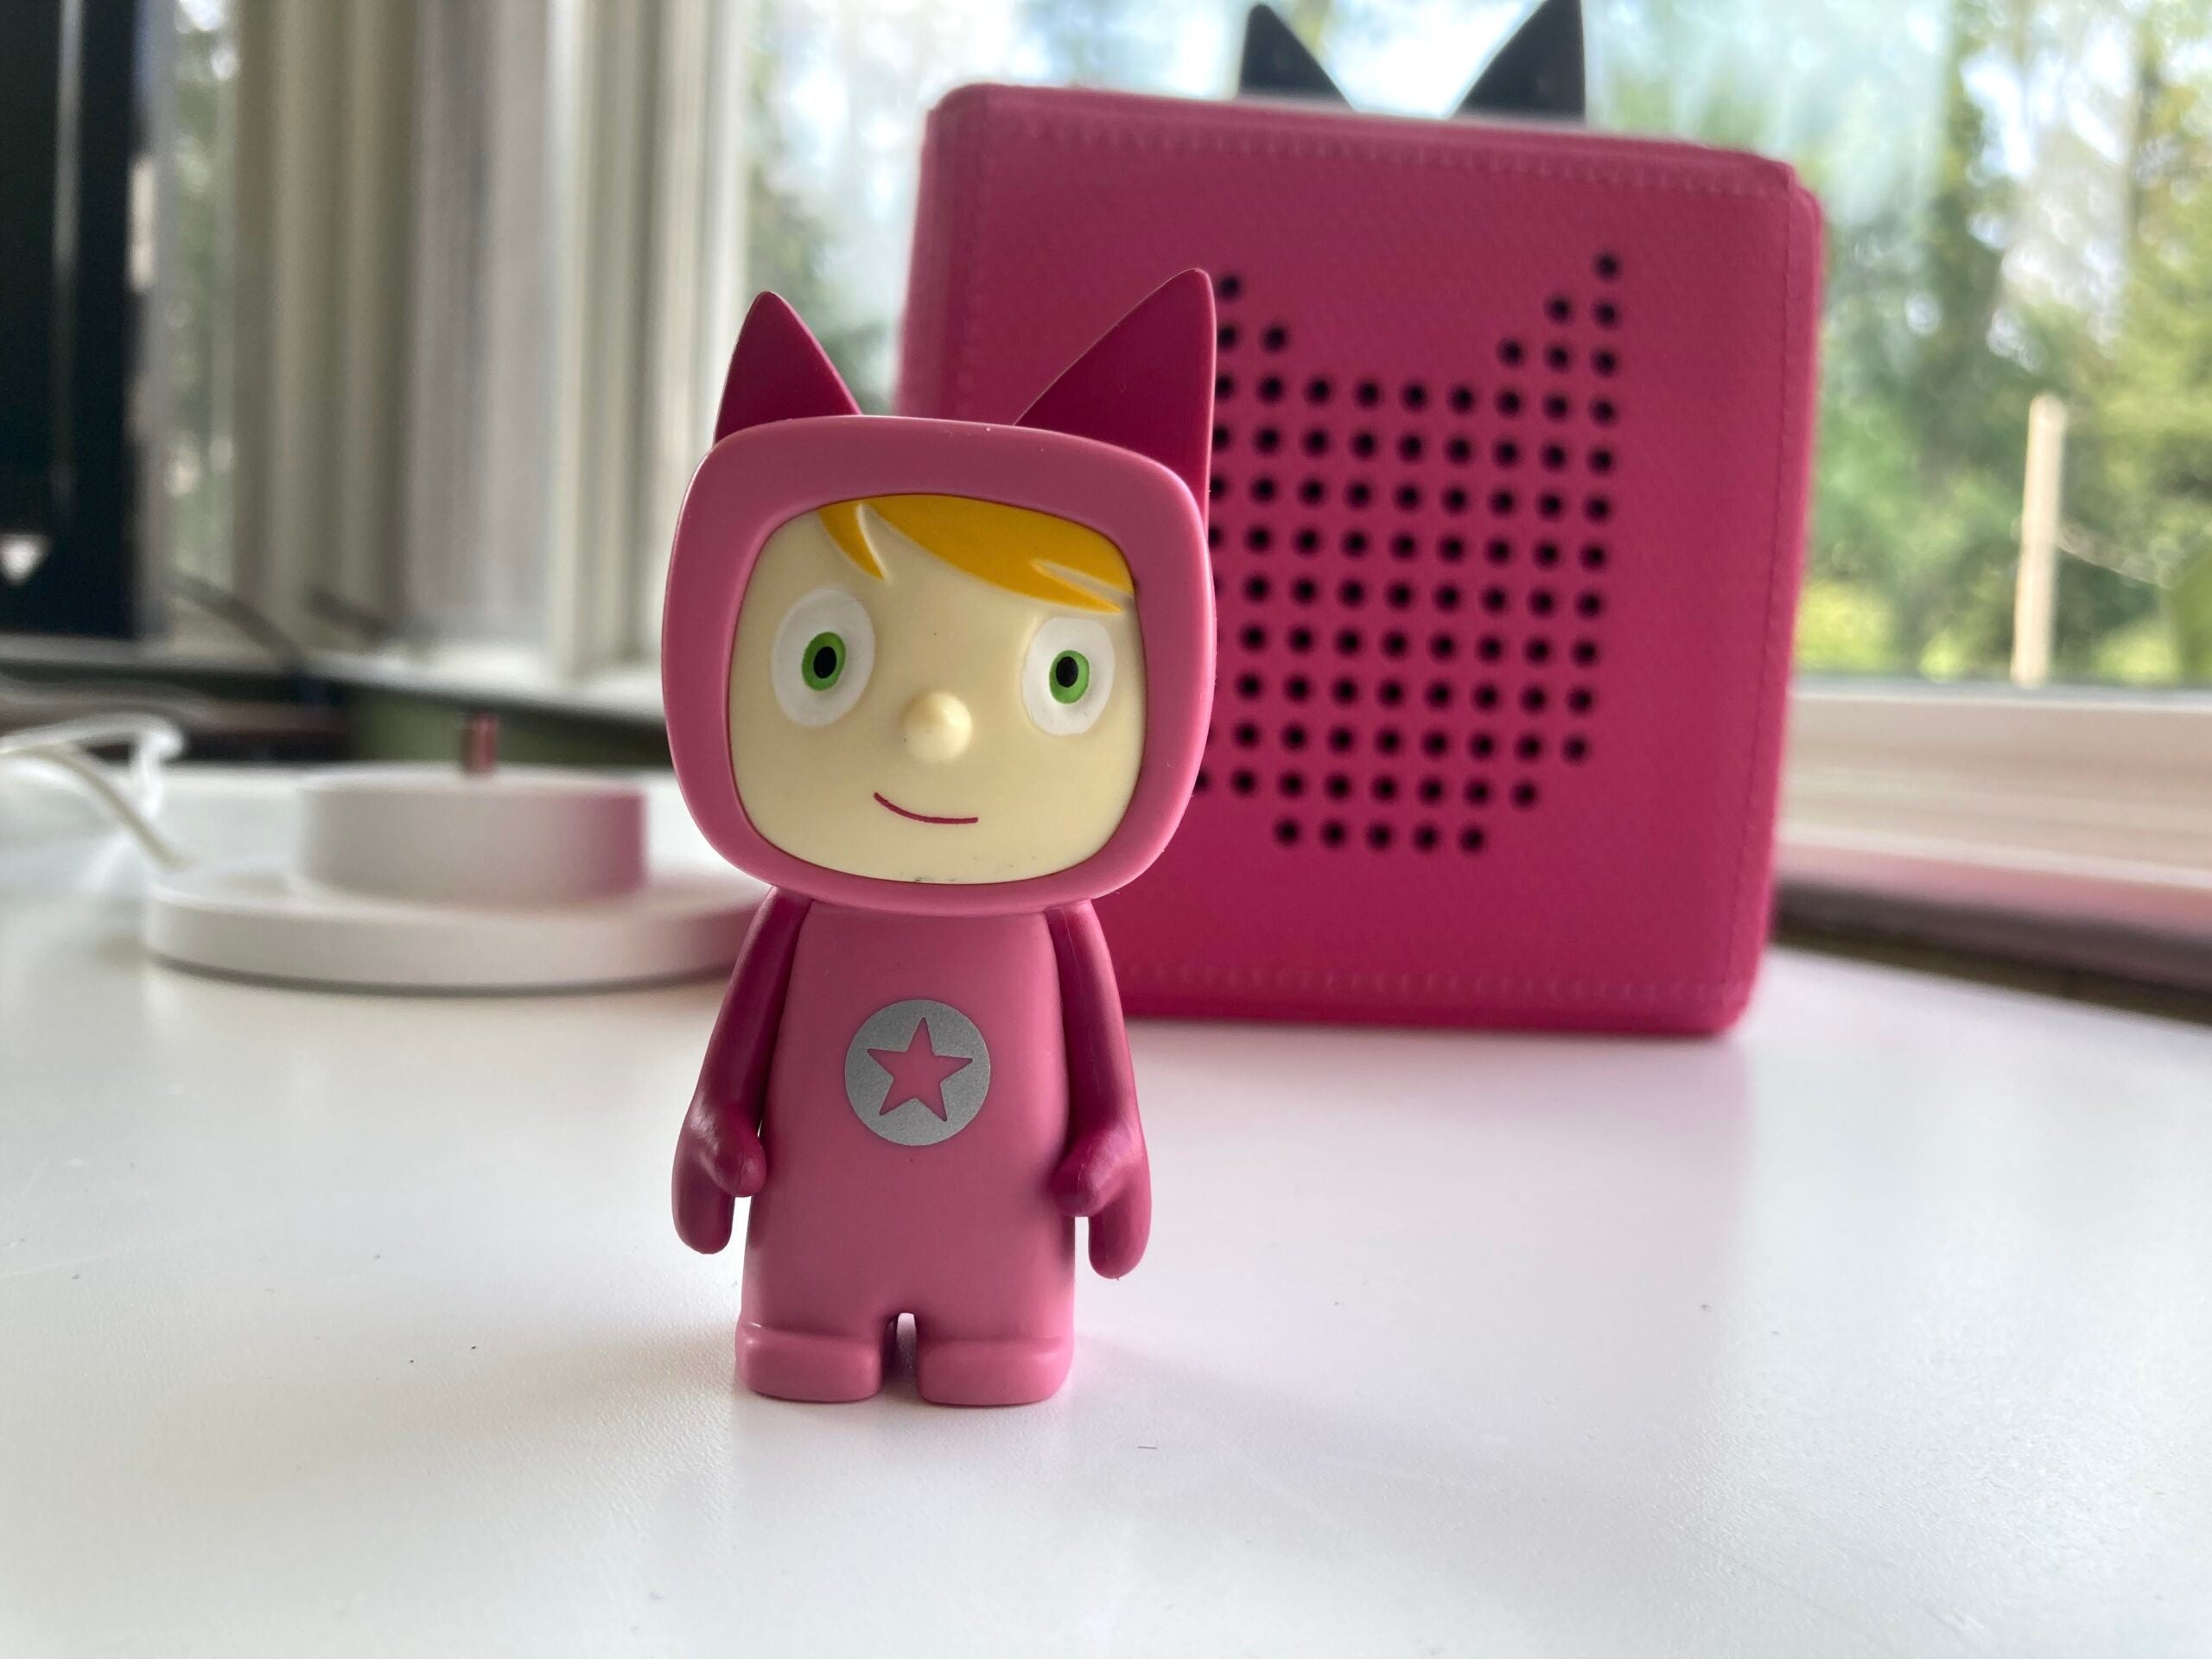 pink toniebox with character